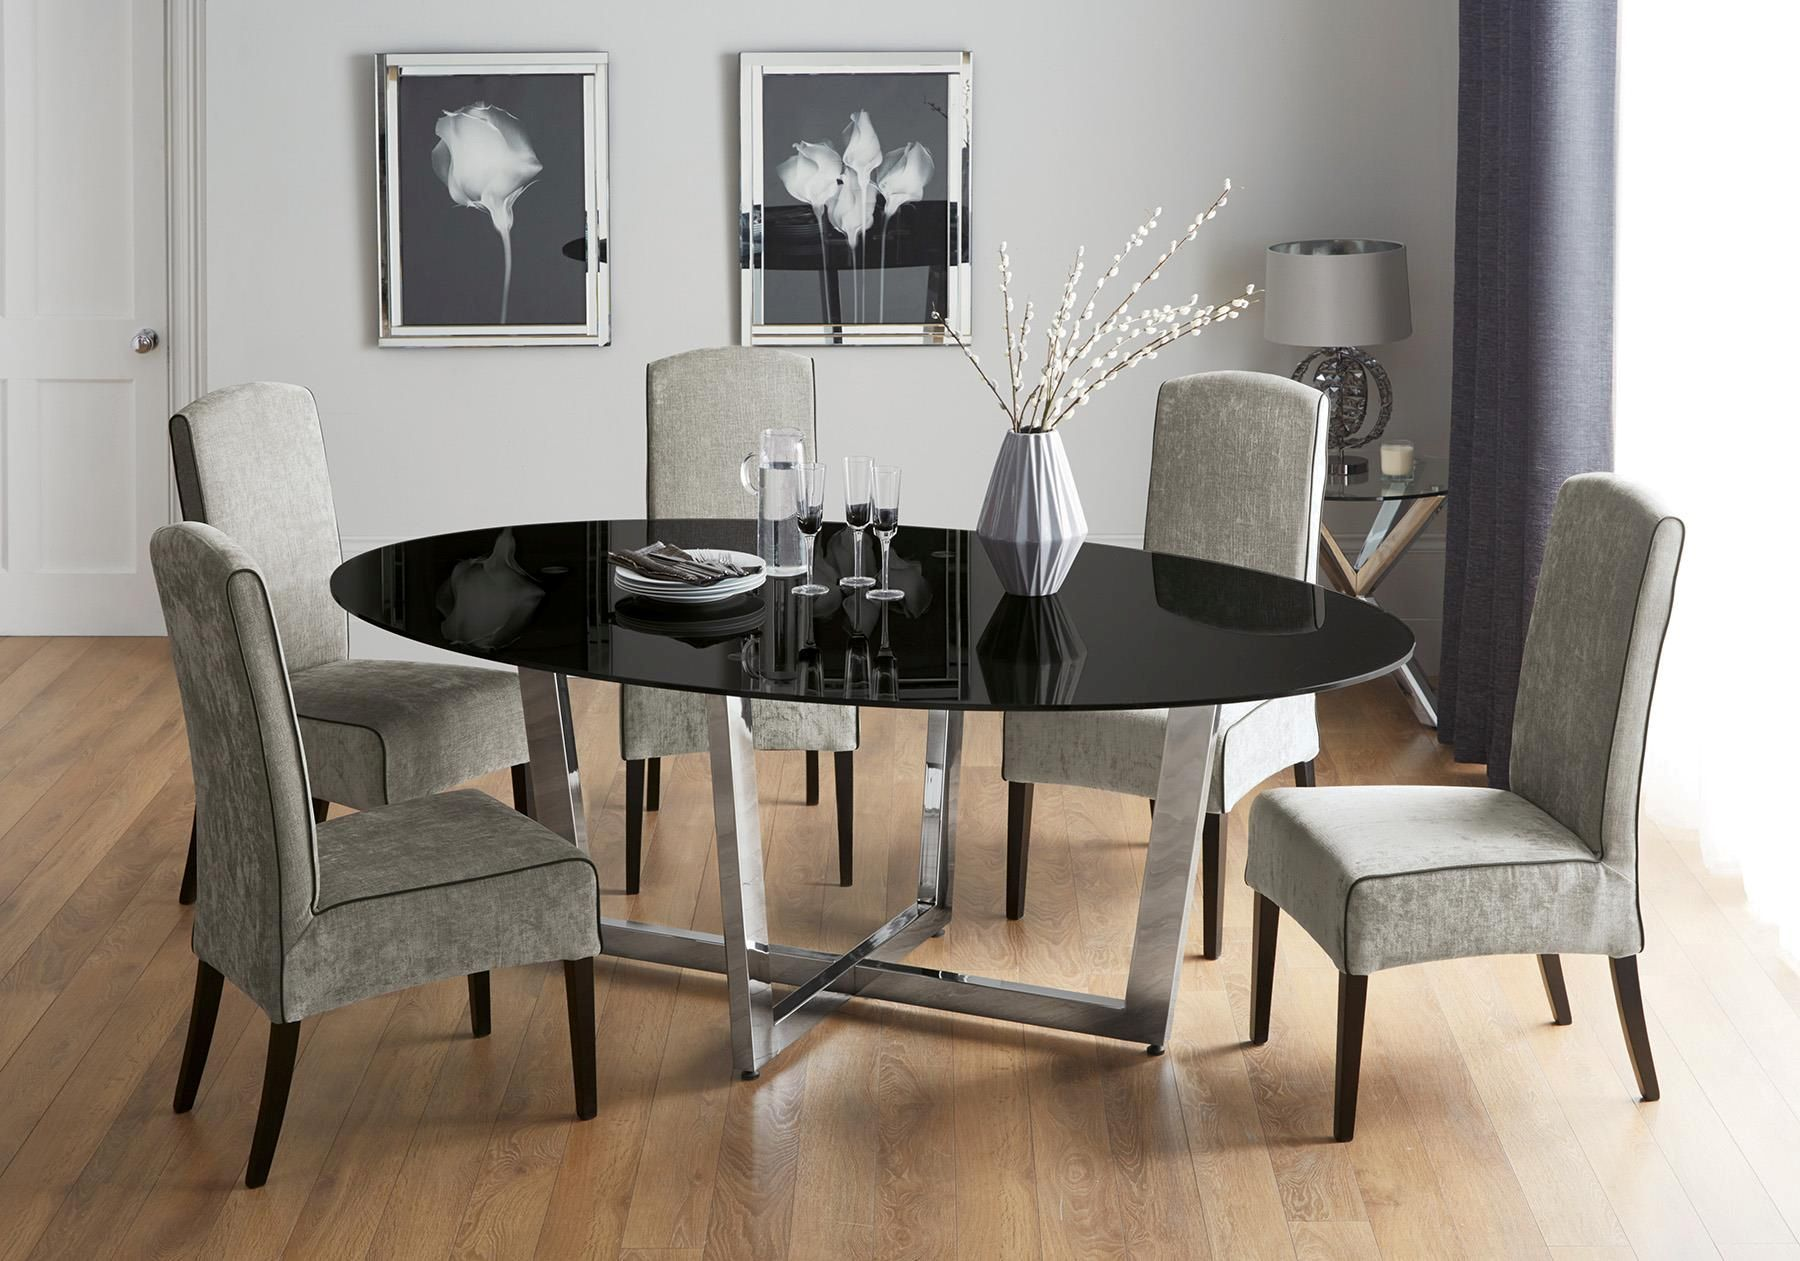 Buy Dining Tables New in House Designer bedroom